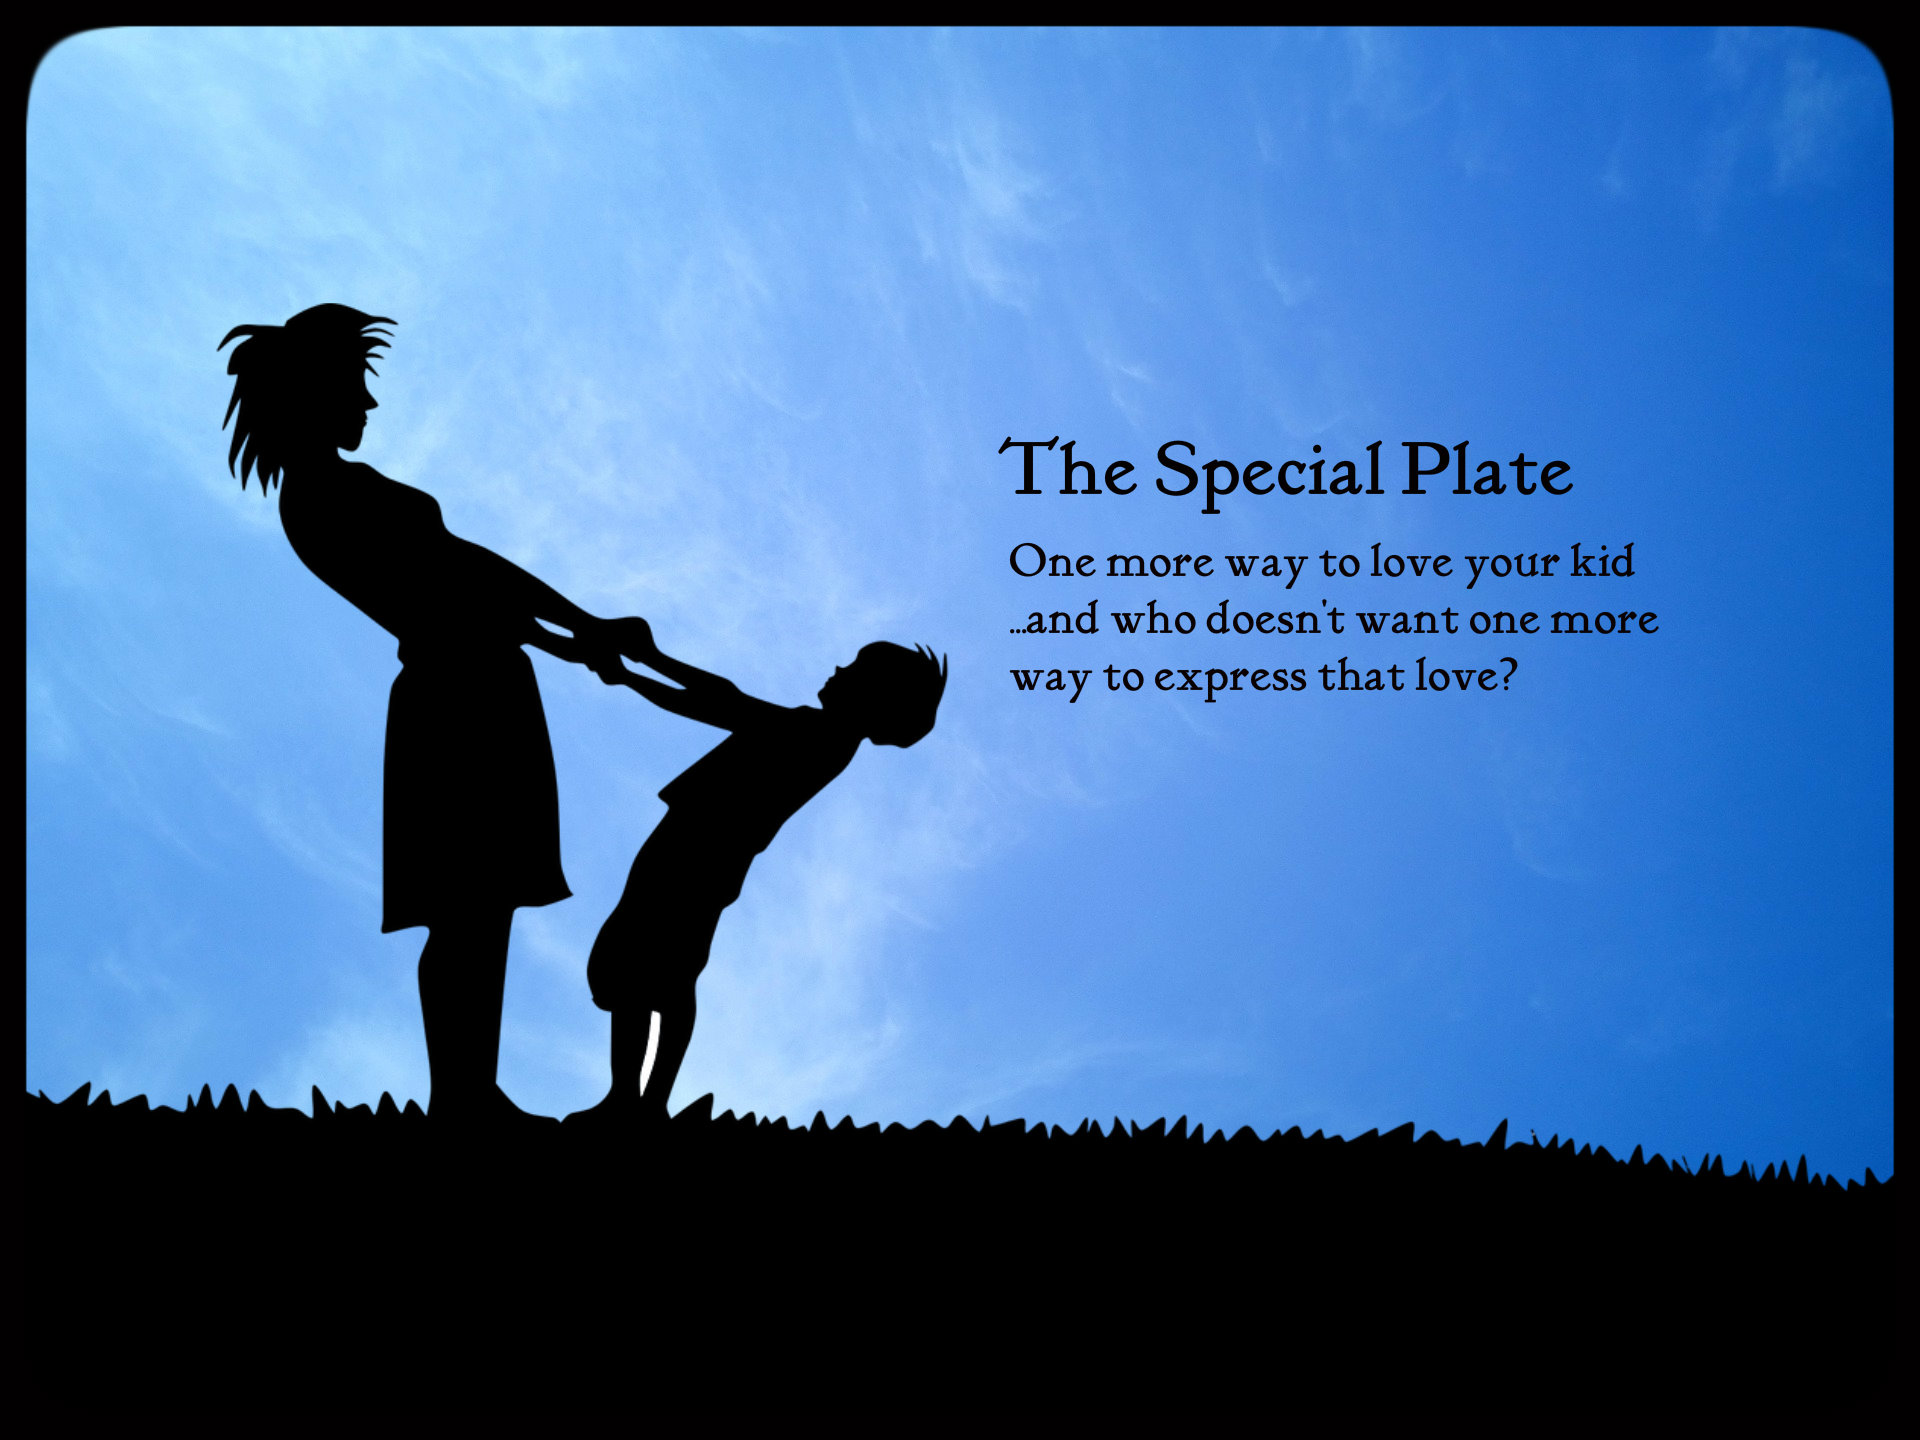 The special plate: One more way to love your kid. And who doesn't want one more way to show your love?